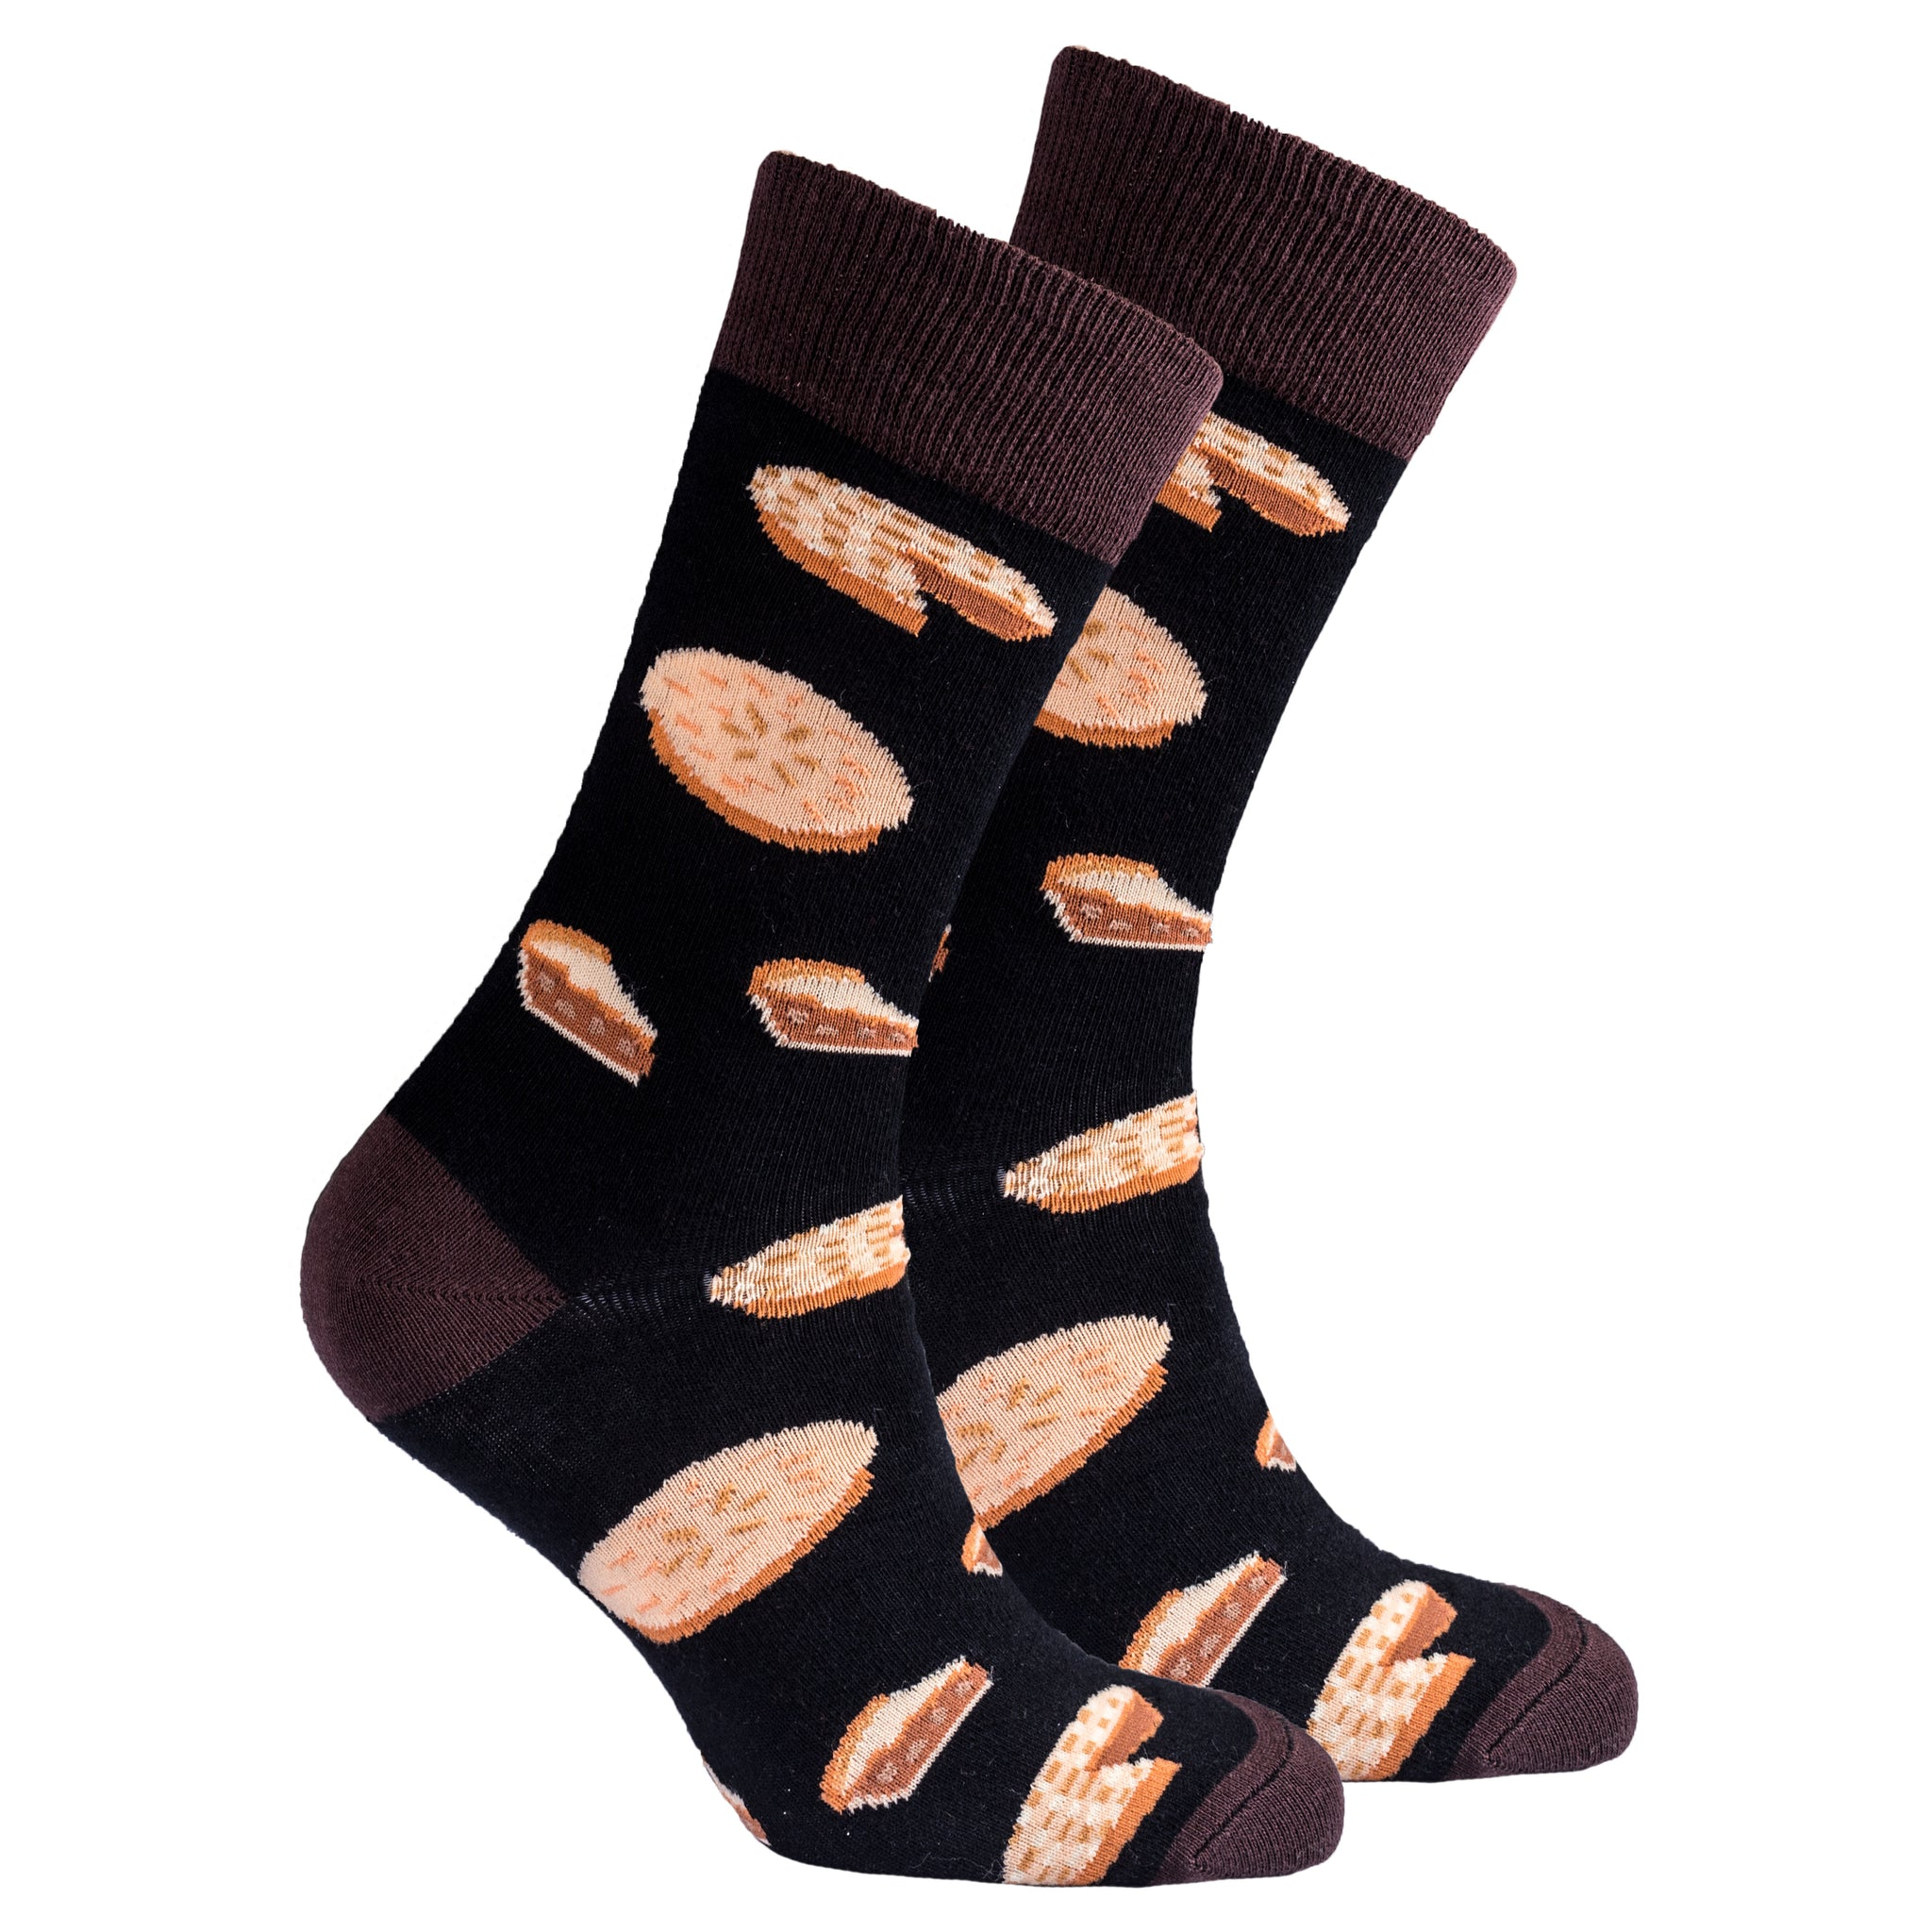 Men's Apple Pie Socks